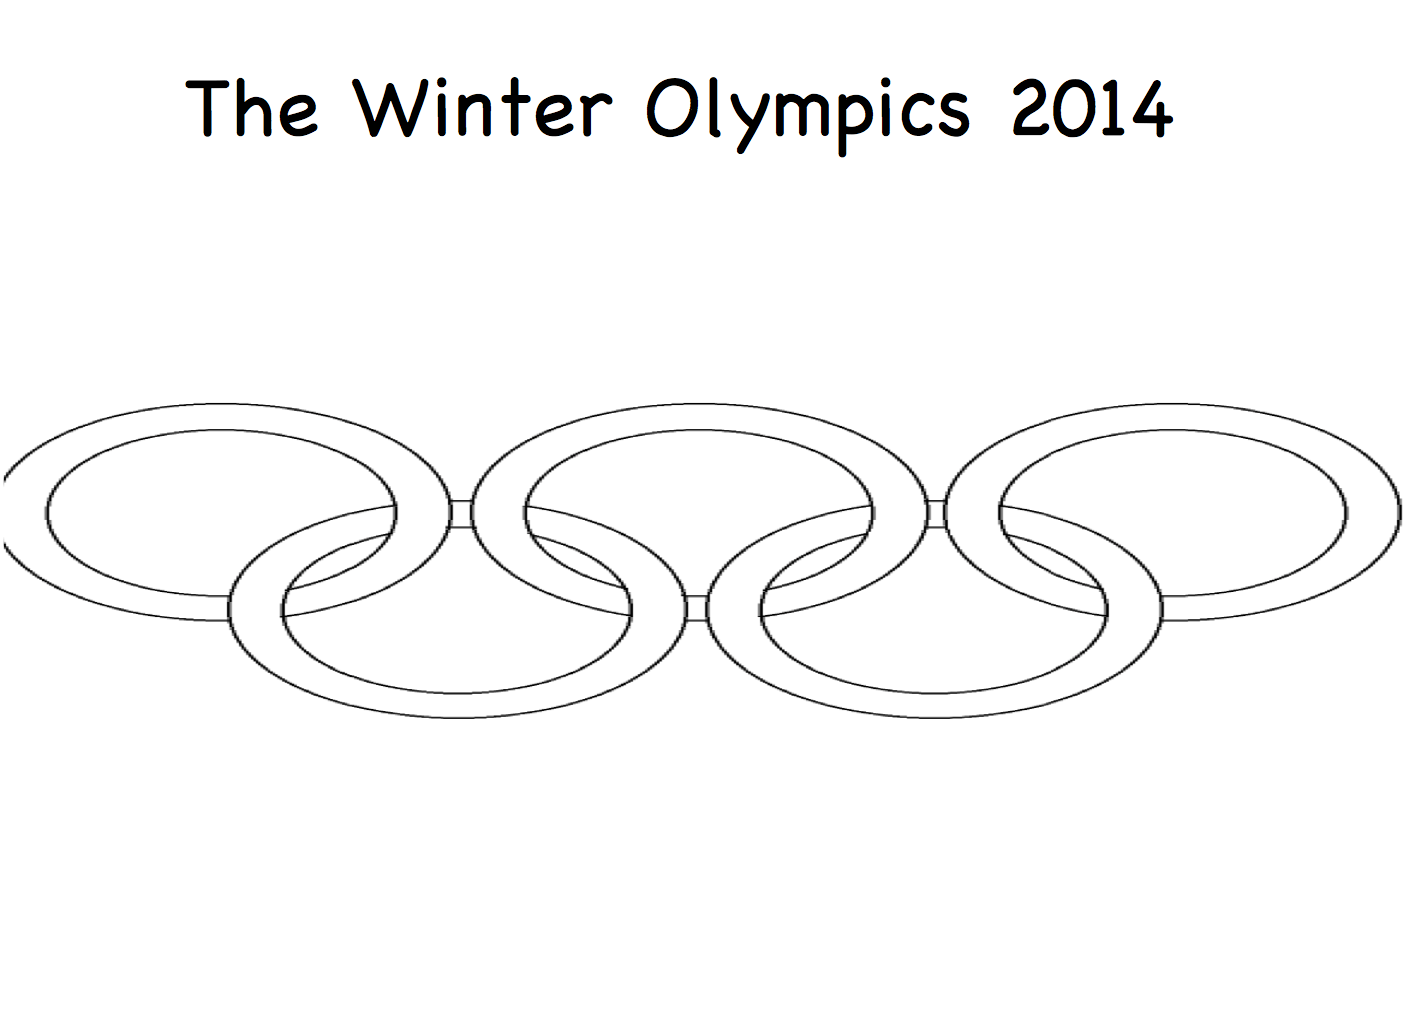 The Olympics Printable Colouring Book Smart Board Ideas